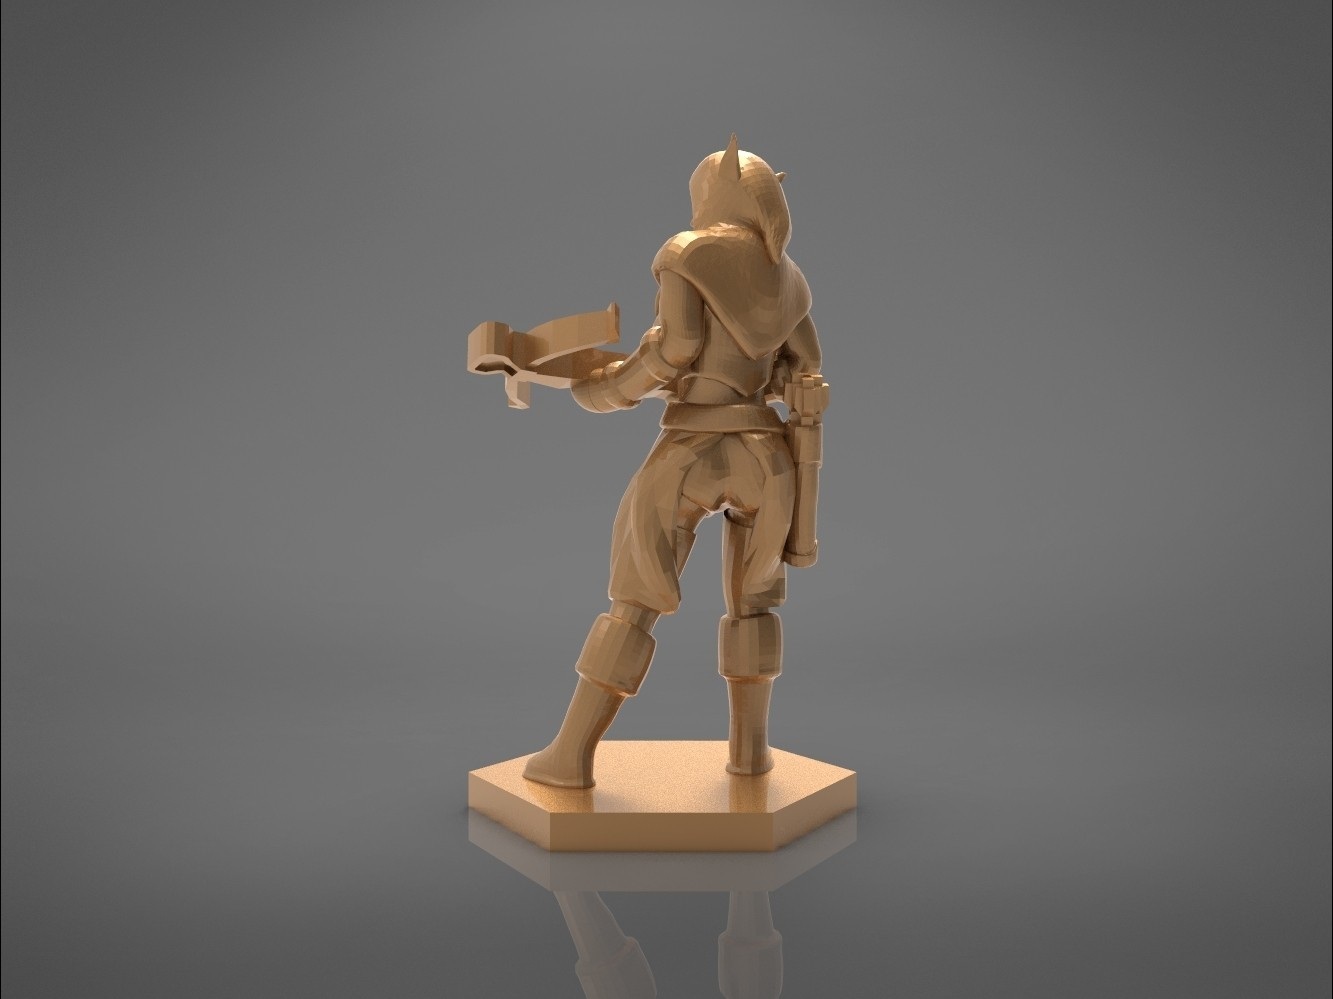 female_ranger-back_perspective.528.jpg Download STL file ELF RANGER FEMALE CHARACTER GAME FIGURES 3D print model • 3D printing object, 3D-mon